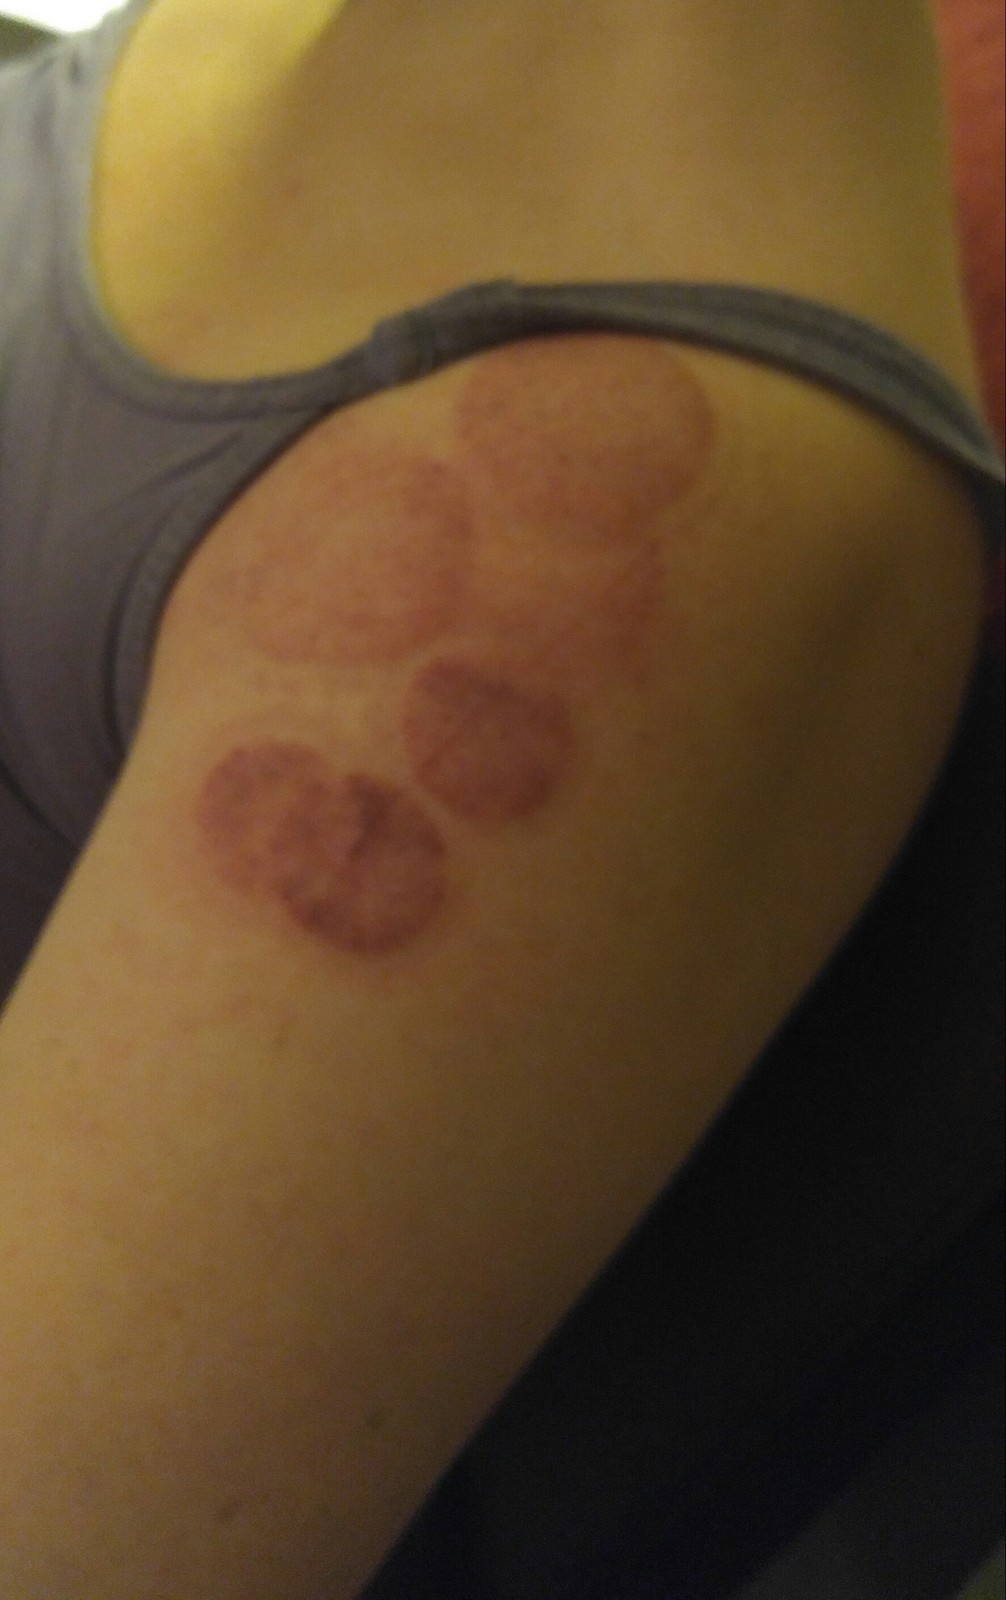 cupping arm